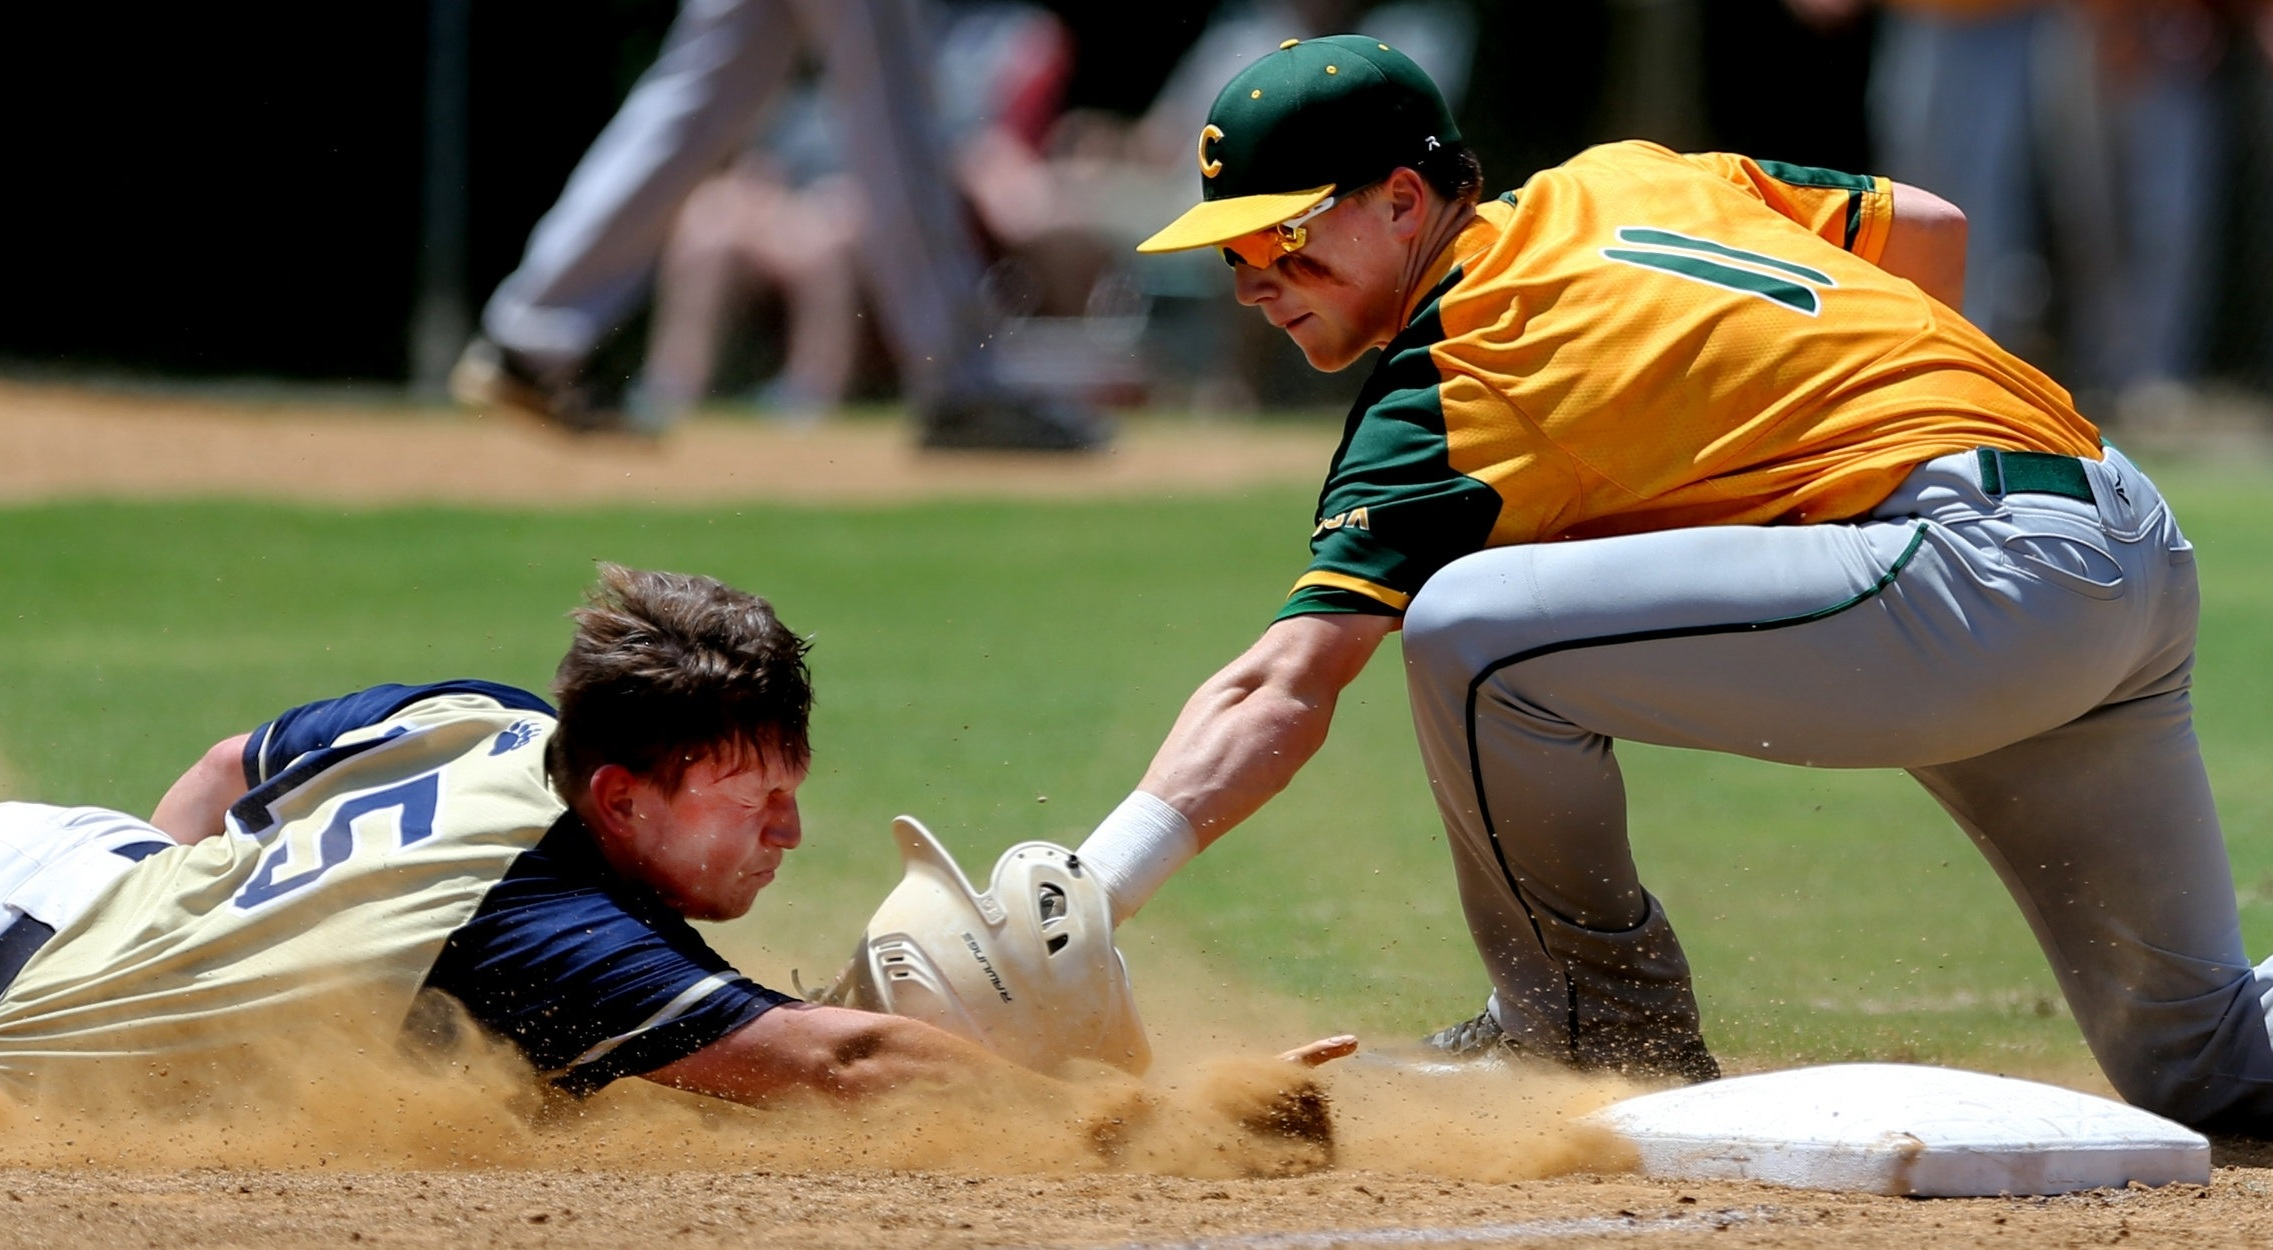 Western Branch's Connor Epley slides safely into third base ahead of the tag by Cox's South Trimble.